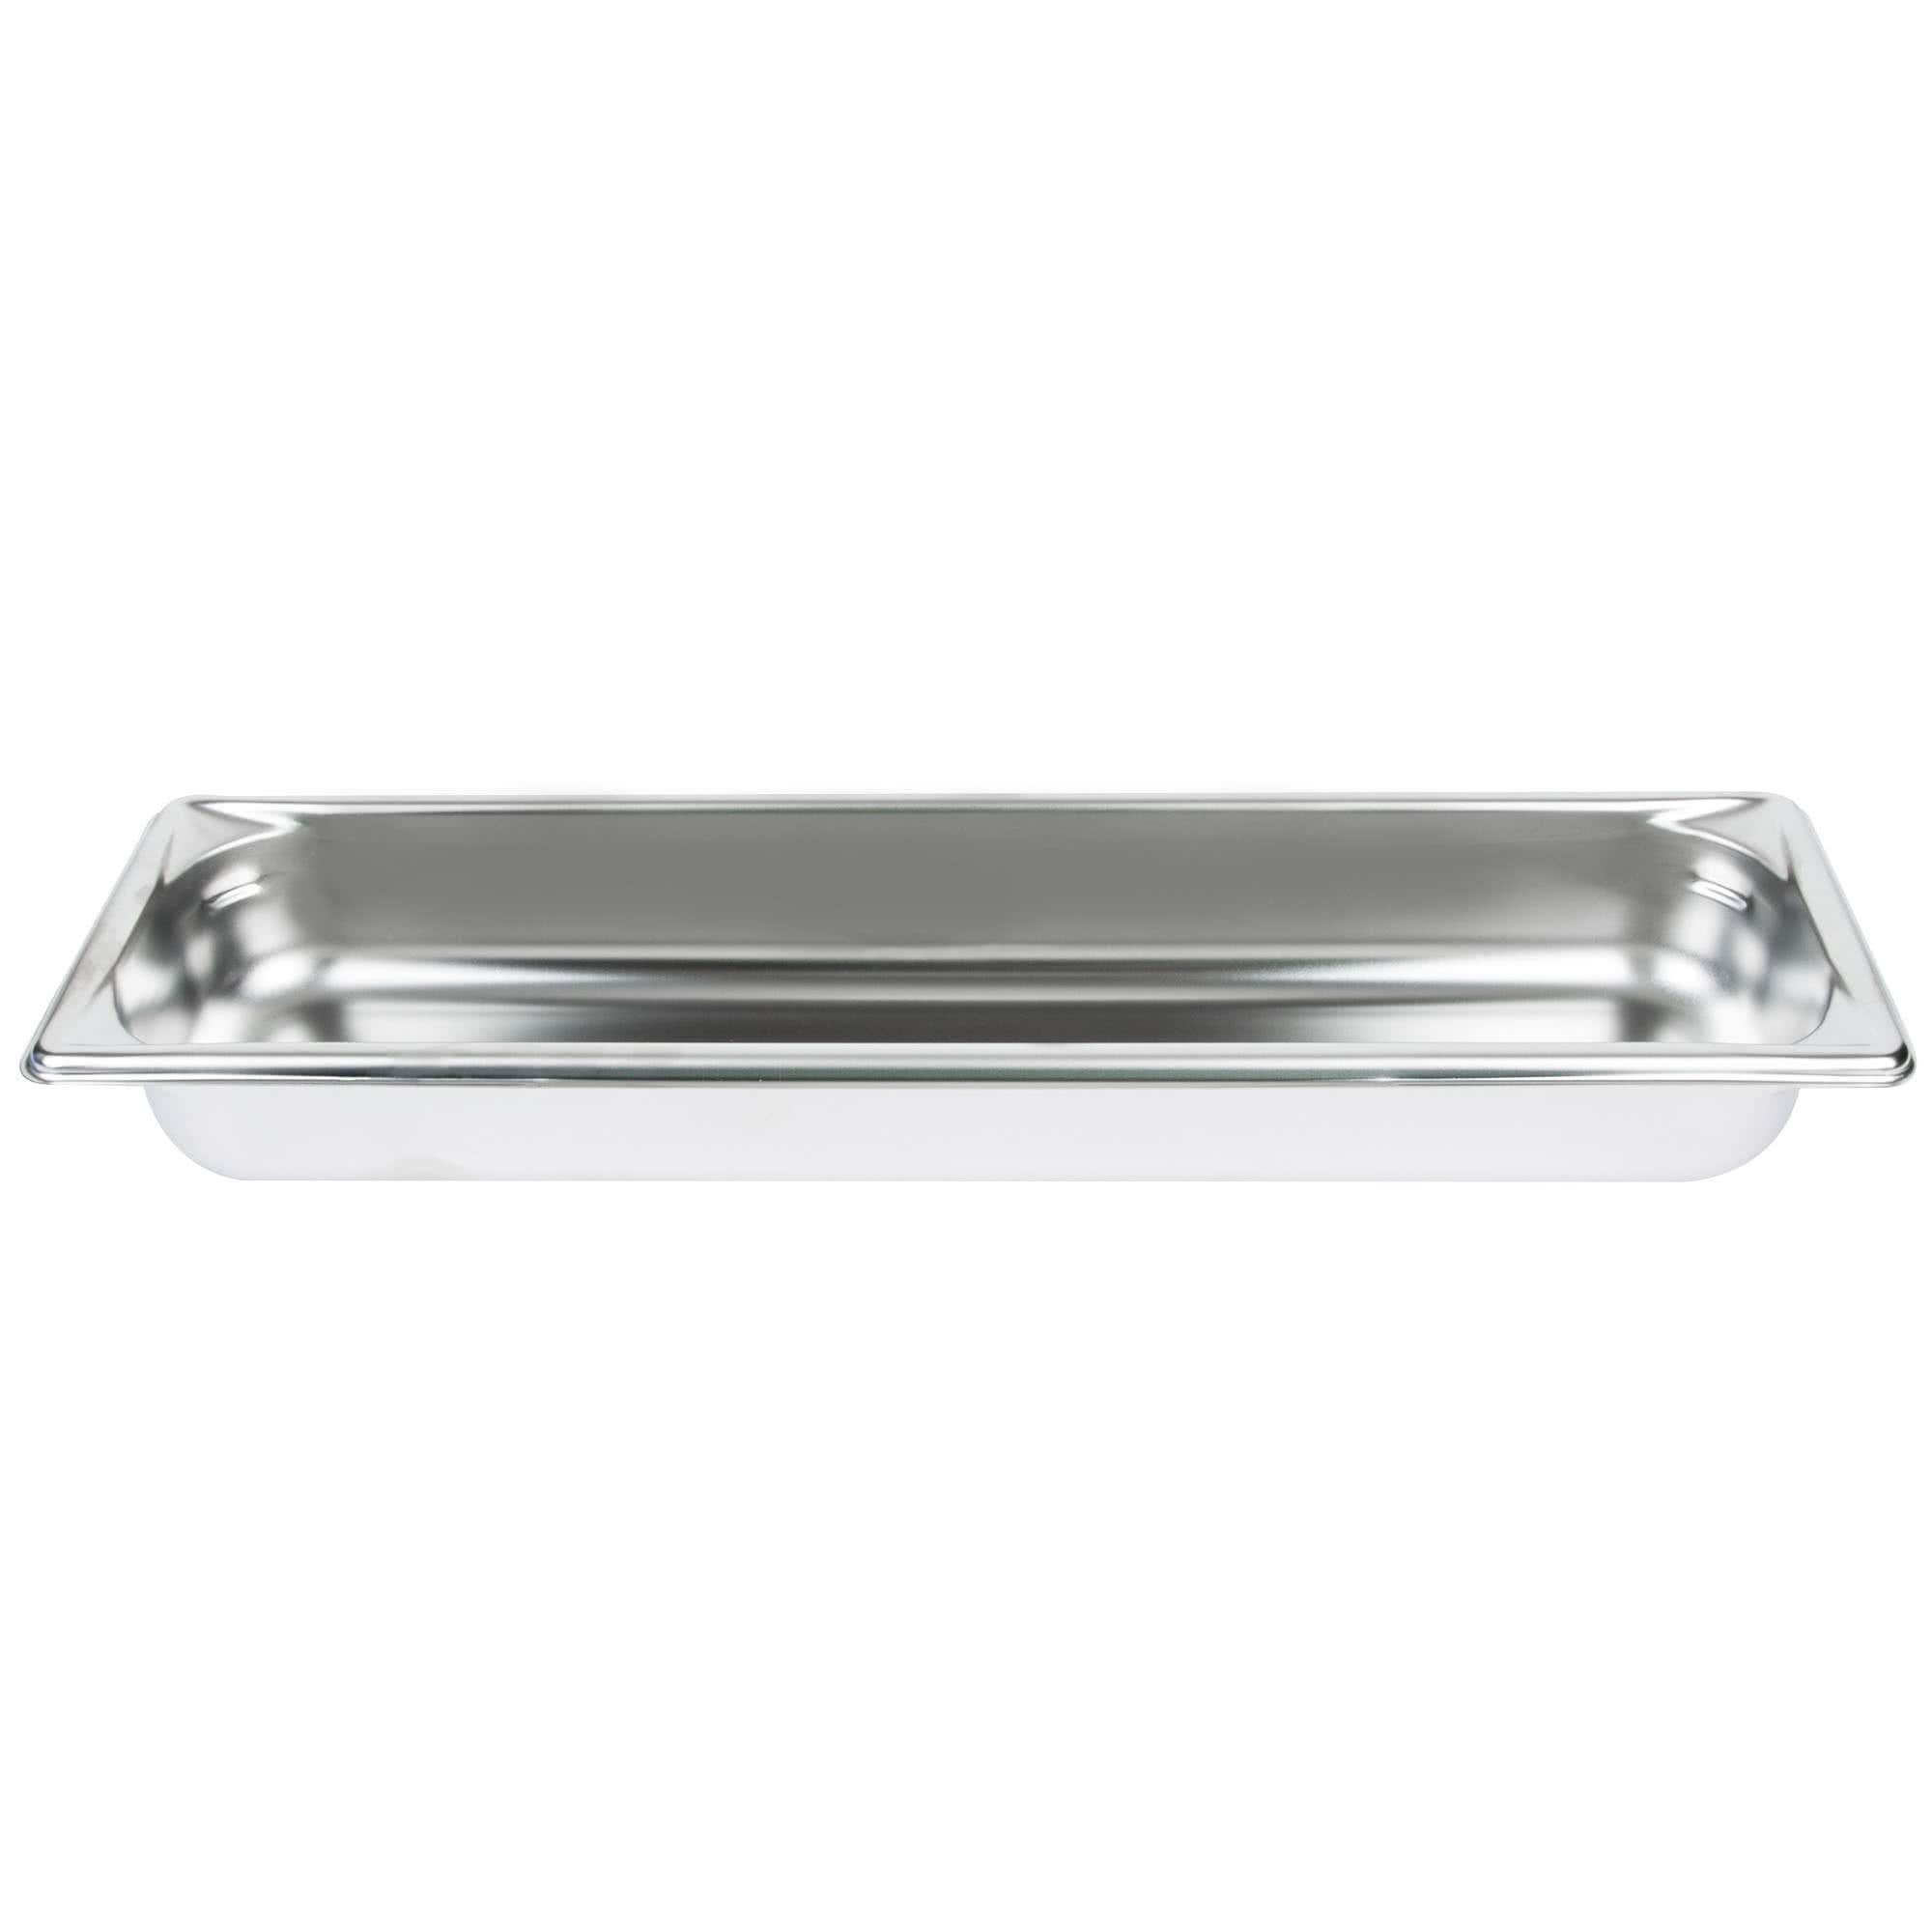 TableTop King 30522 Super Pan V 1/2 Size Long Anti-Jam Stainless Steel Steam Table/Hotel Pan - 2 1/2'' Deep by TableTop King